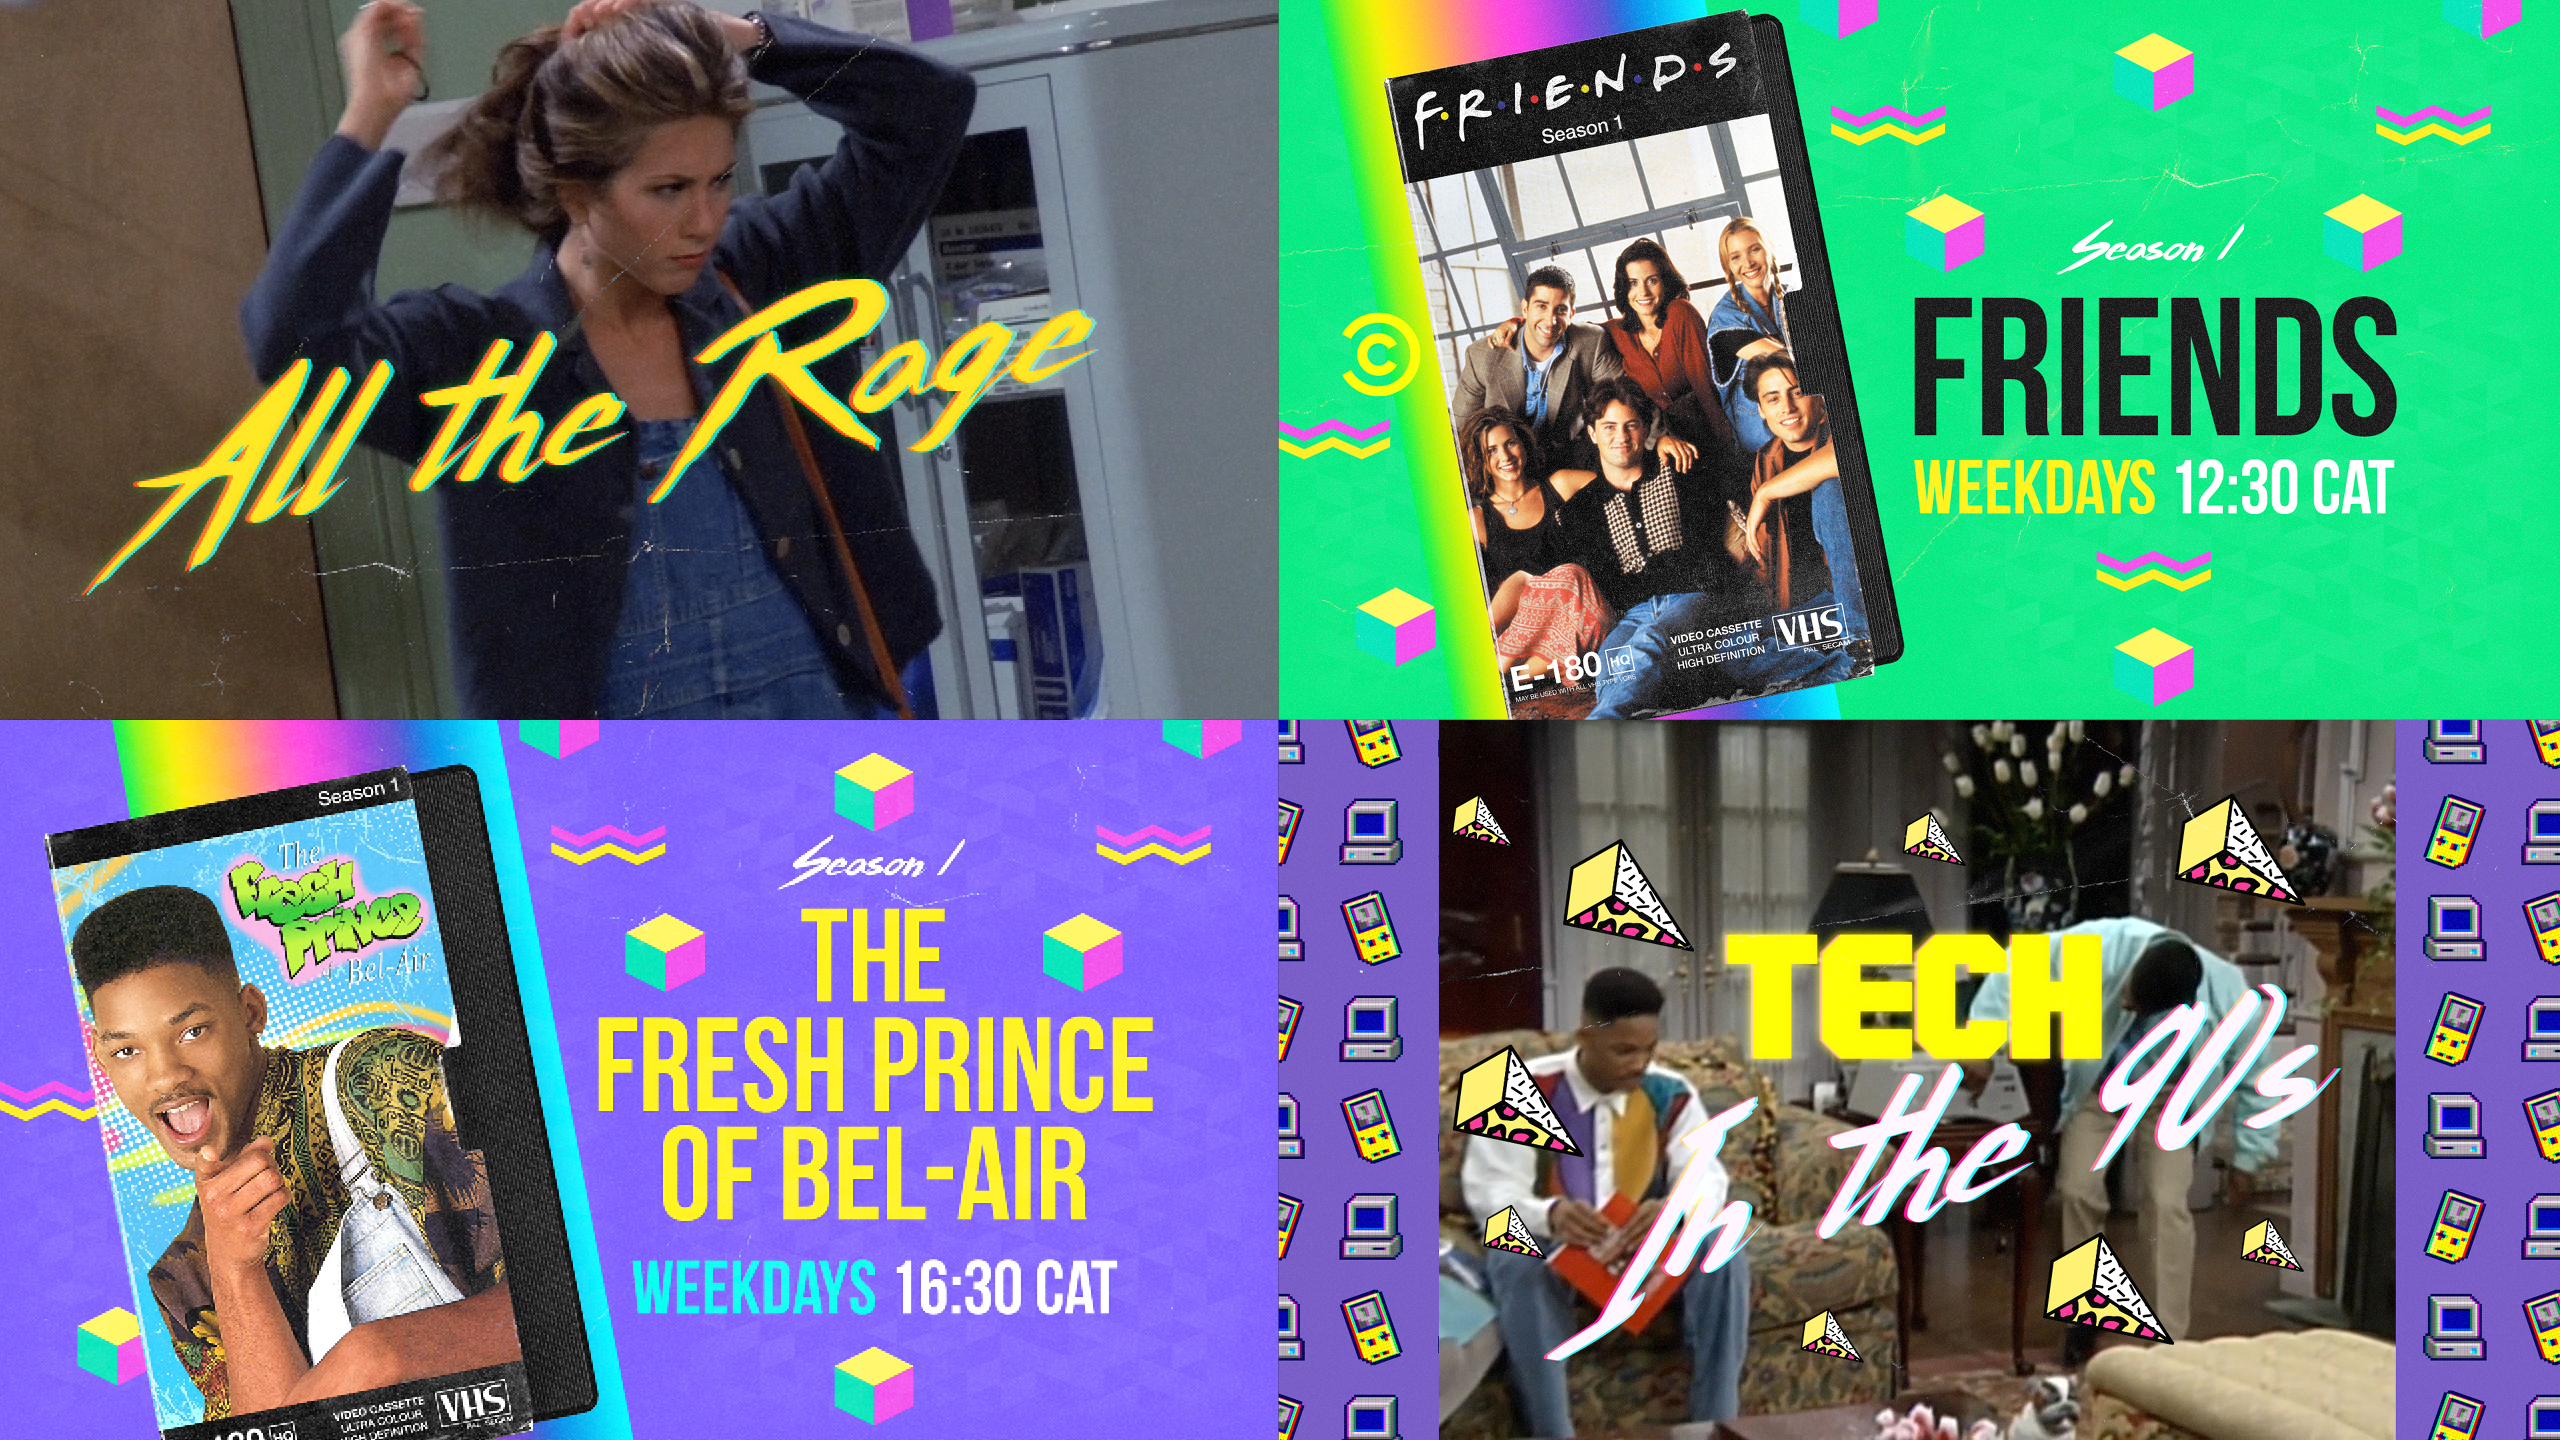 A collage of 90's retro images from Friends and the Fresh Prince of Bel Air